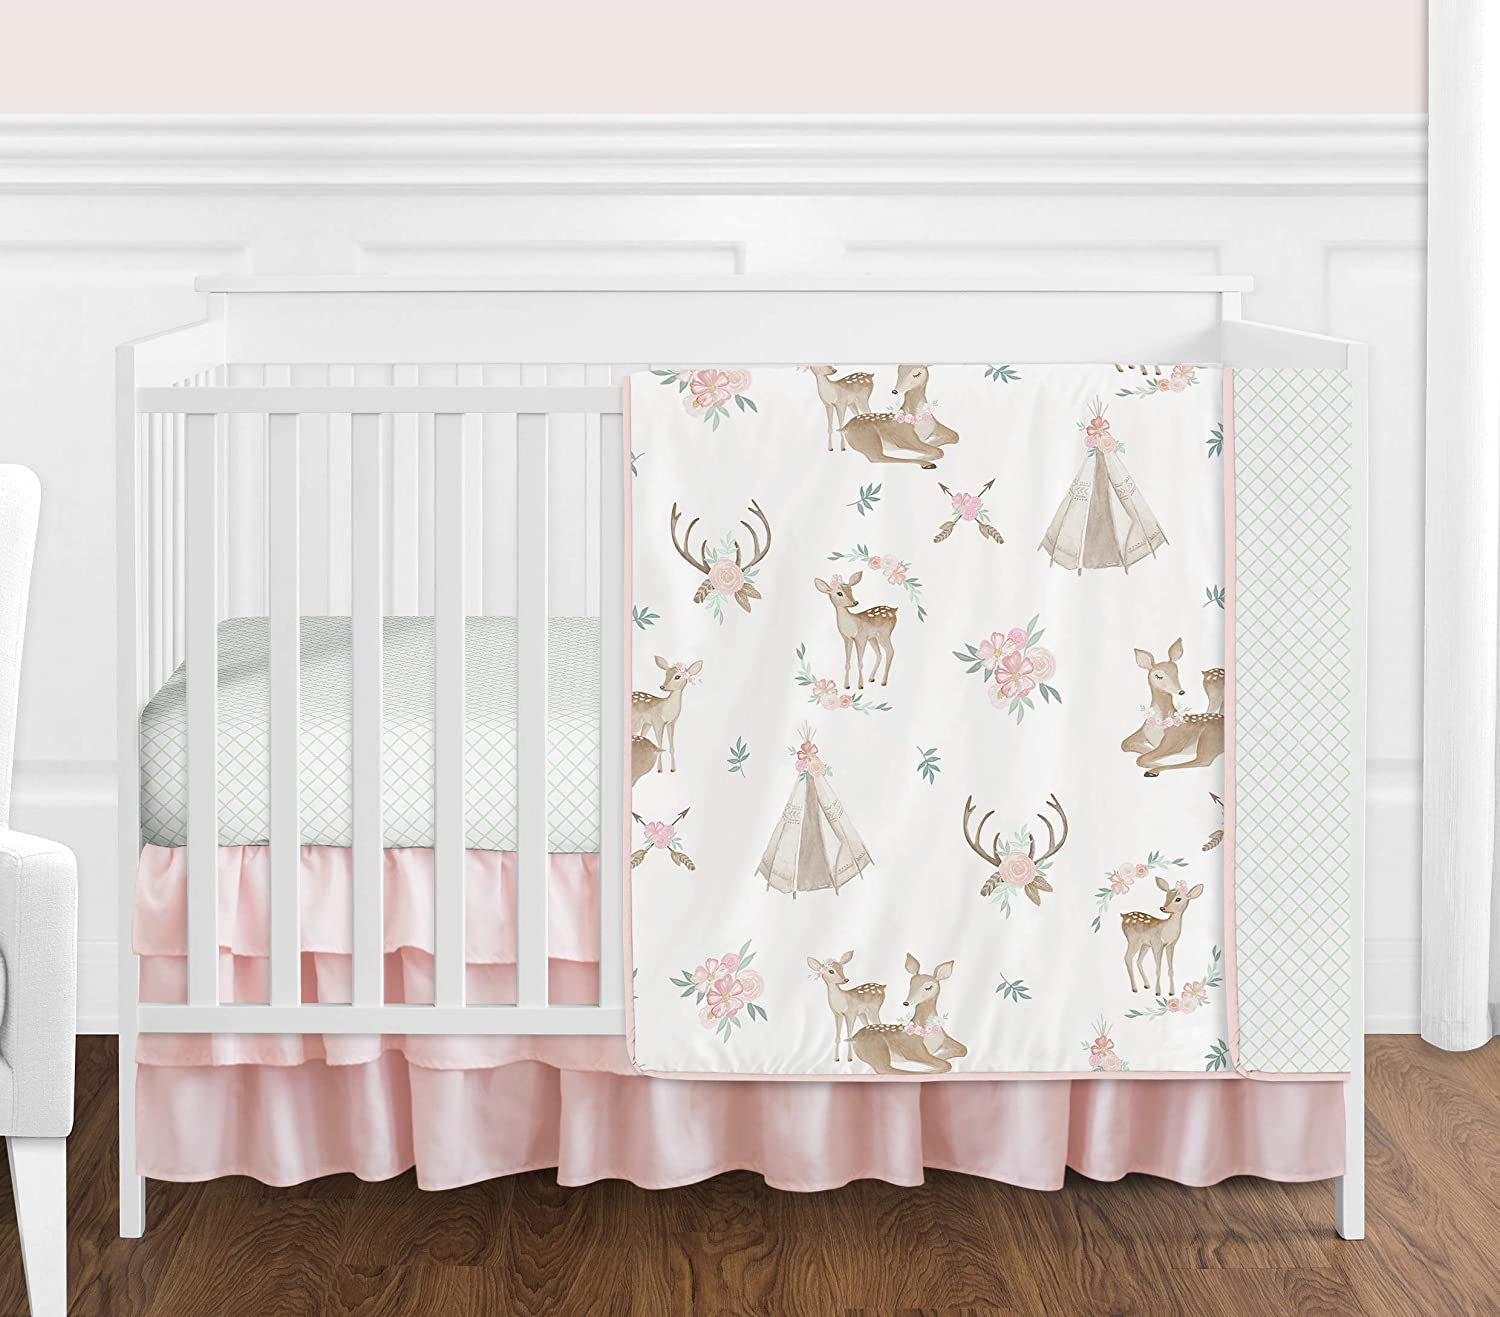 Sweet Jojo Designs Blush Pink, Mint Green and White Boho Watercolor Woodland Deer Floral Baby Girl Crib Bedding Set - 4 Pieces